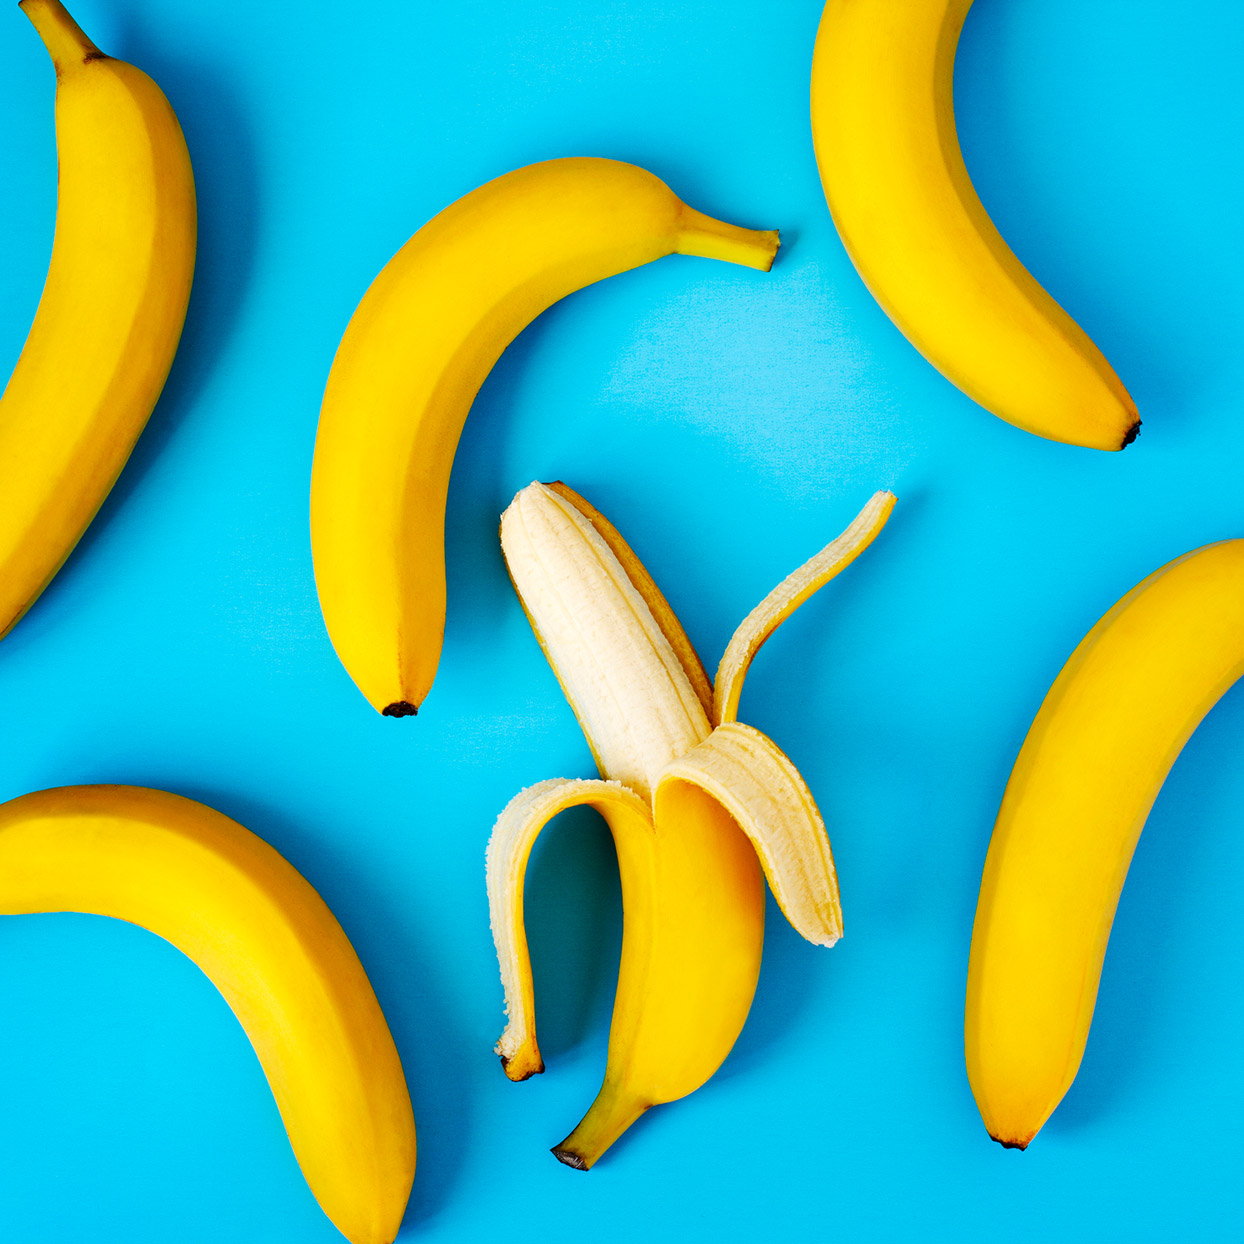 bananas against a blue background